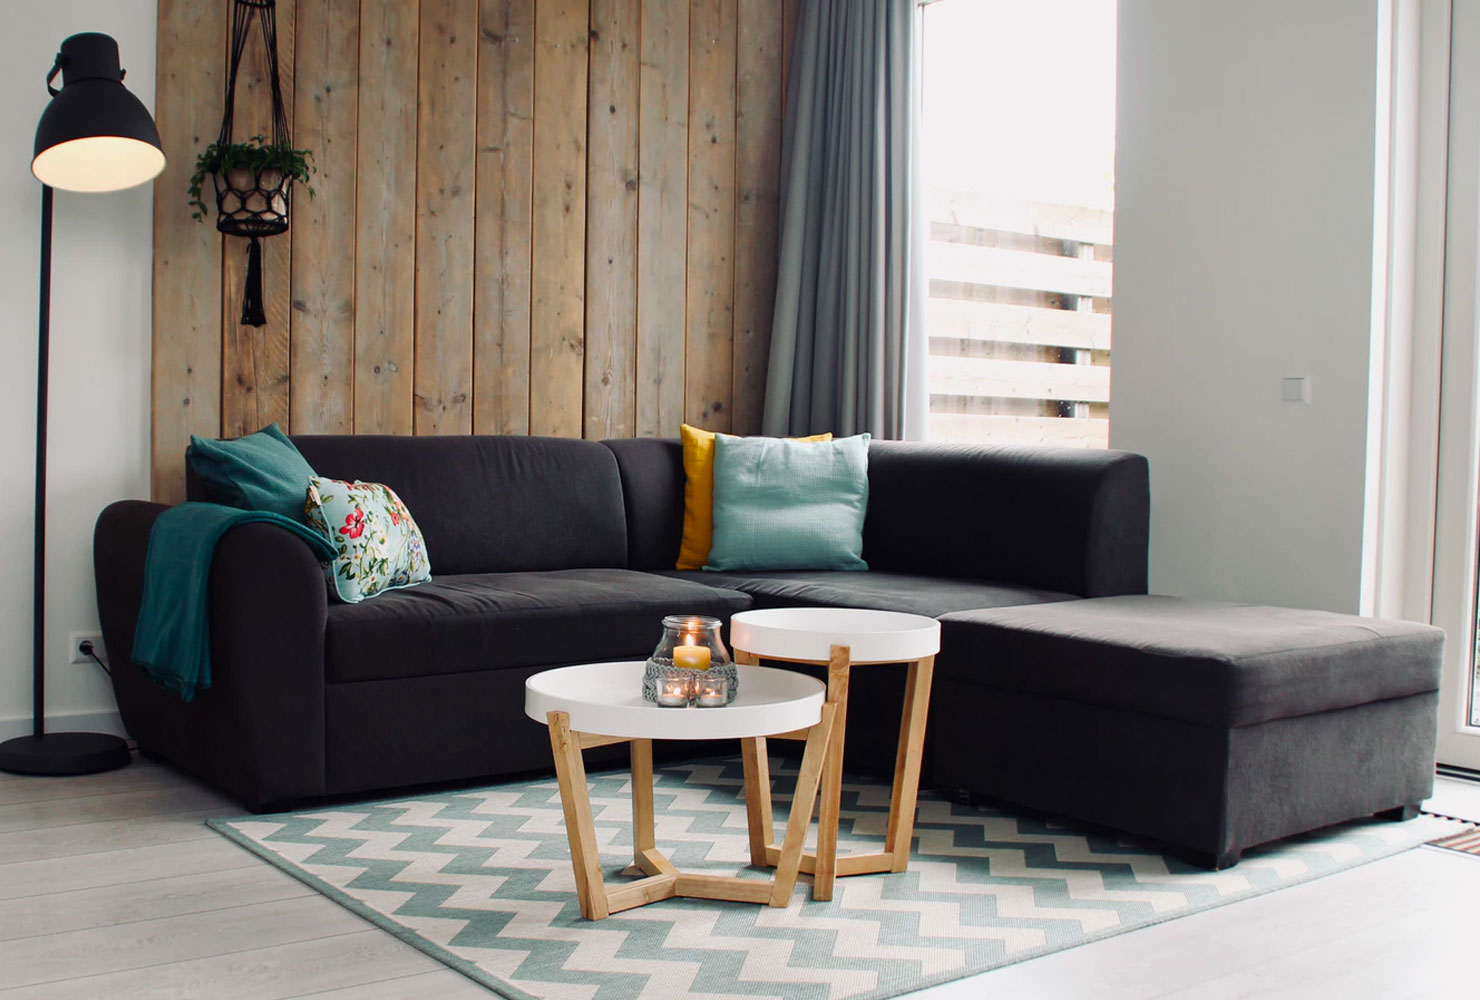 corner decoration ideas for living room sectional couch